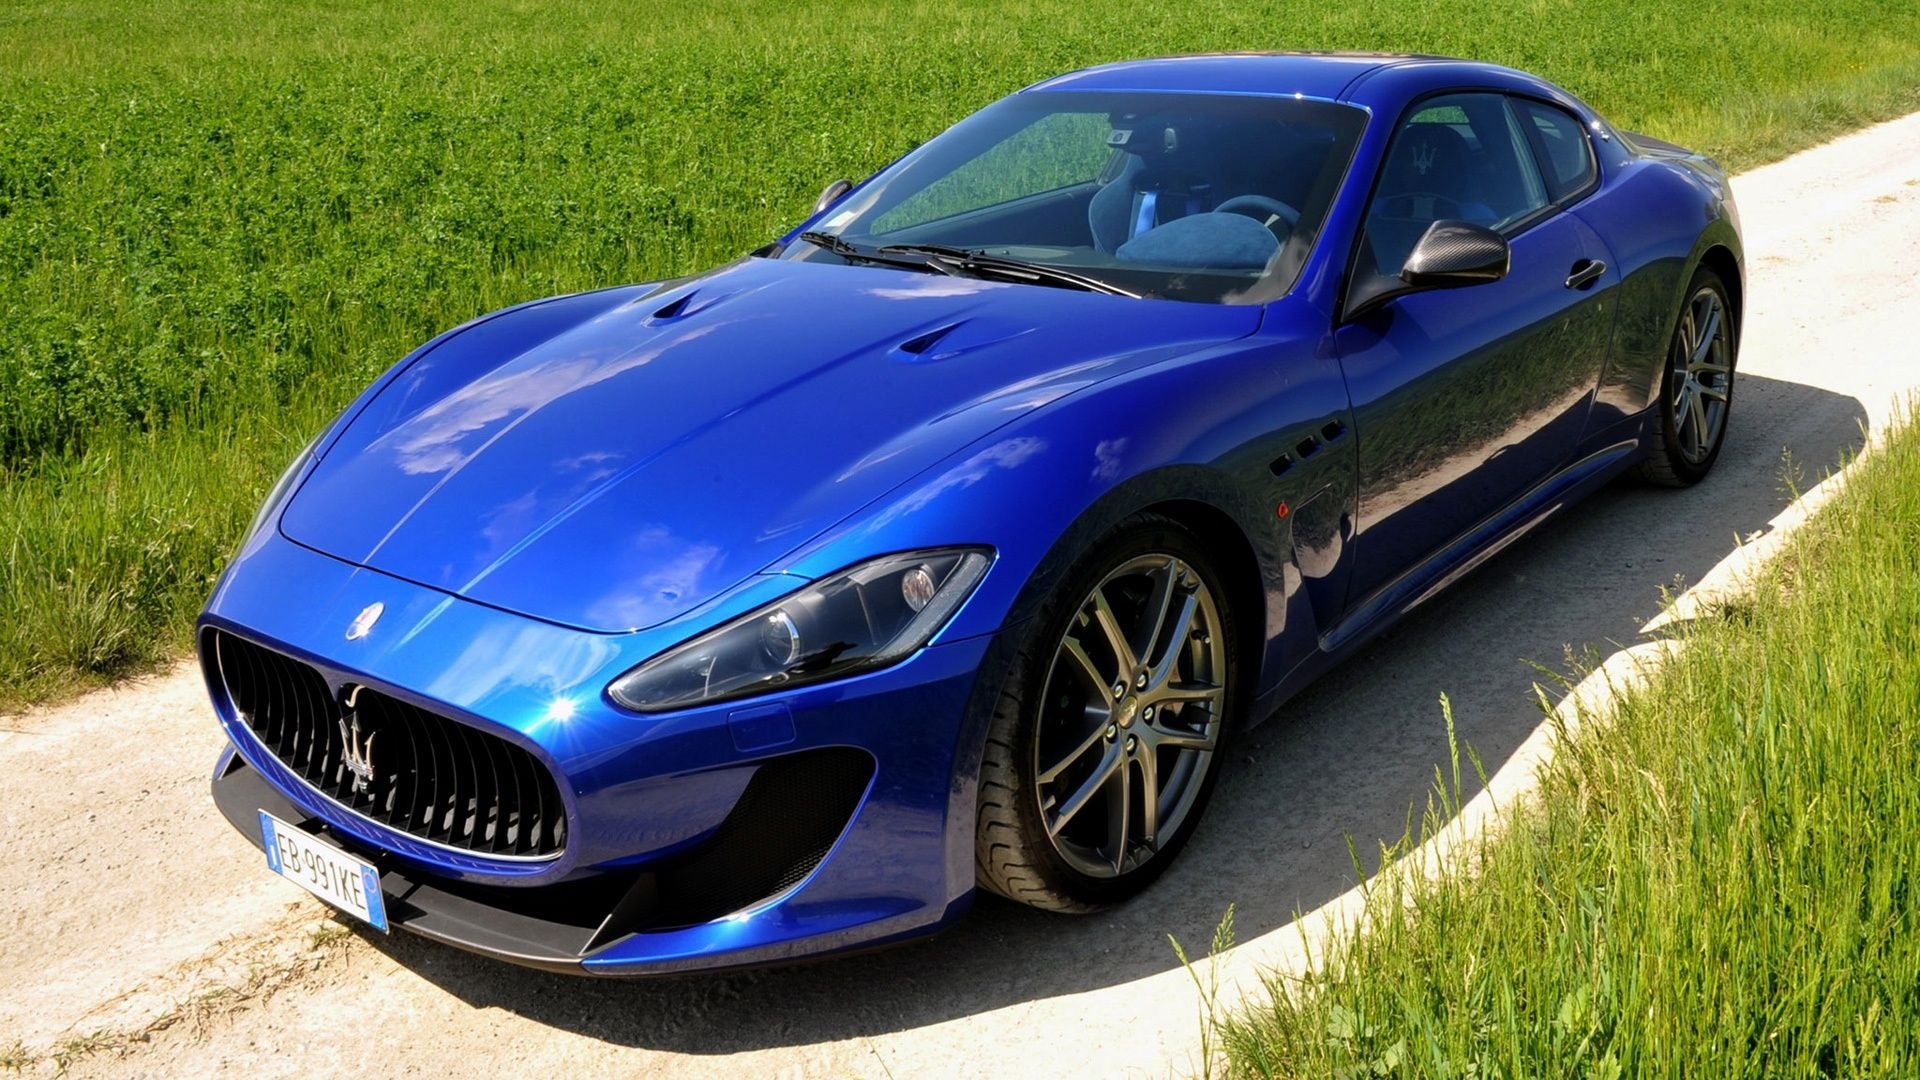 Maserati Granturismo Mc Stradale In Nice Blue On Hd Wallpapers